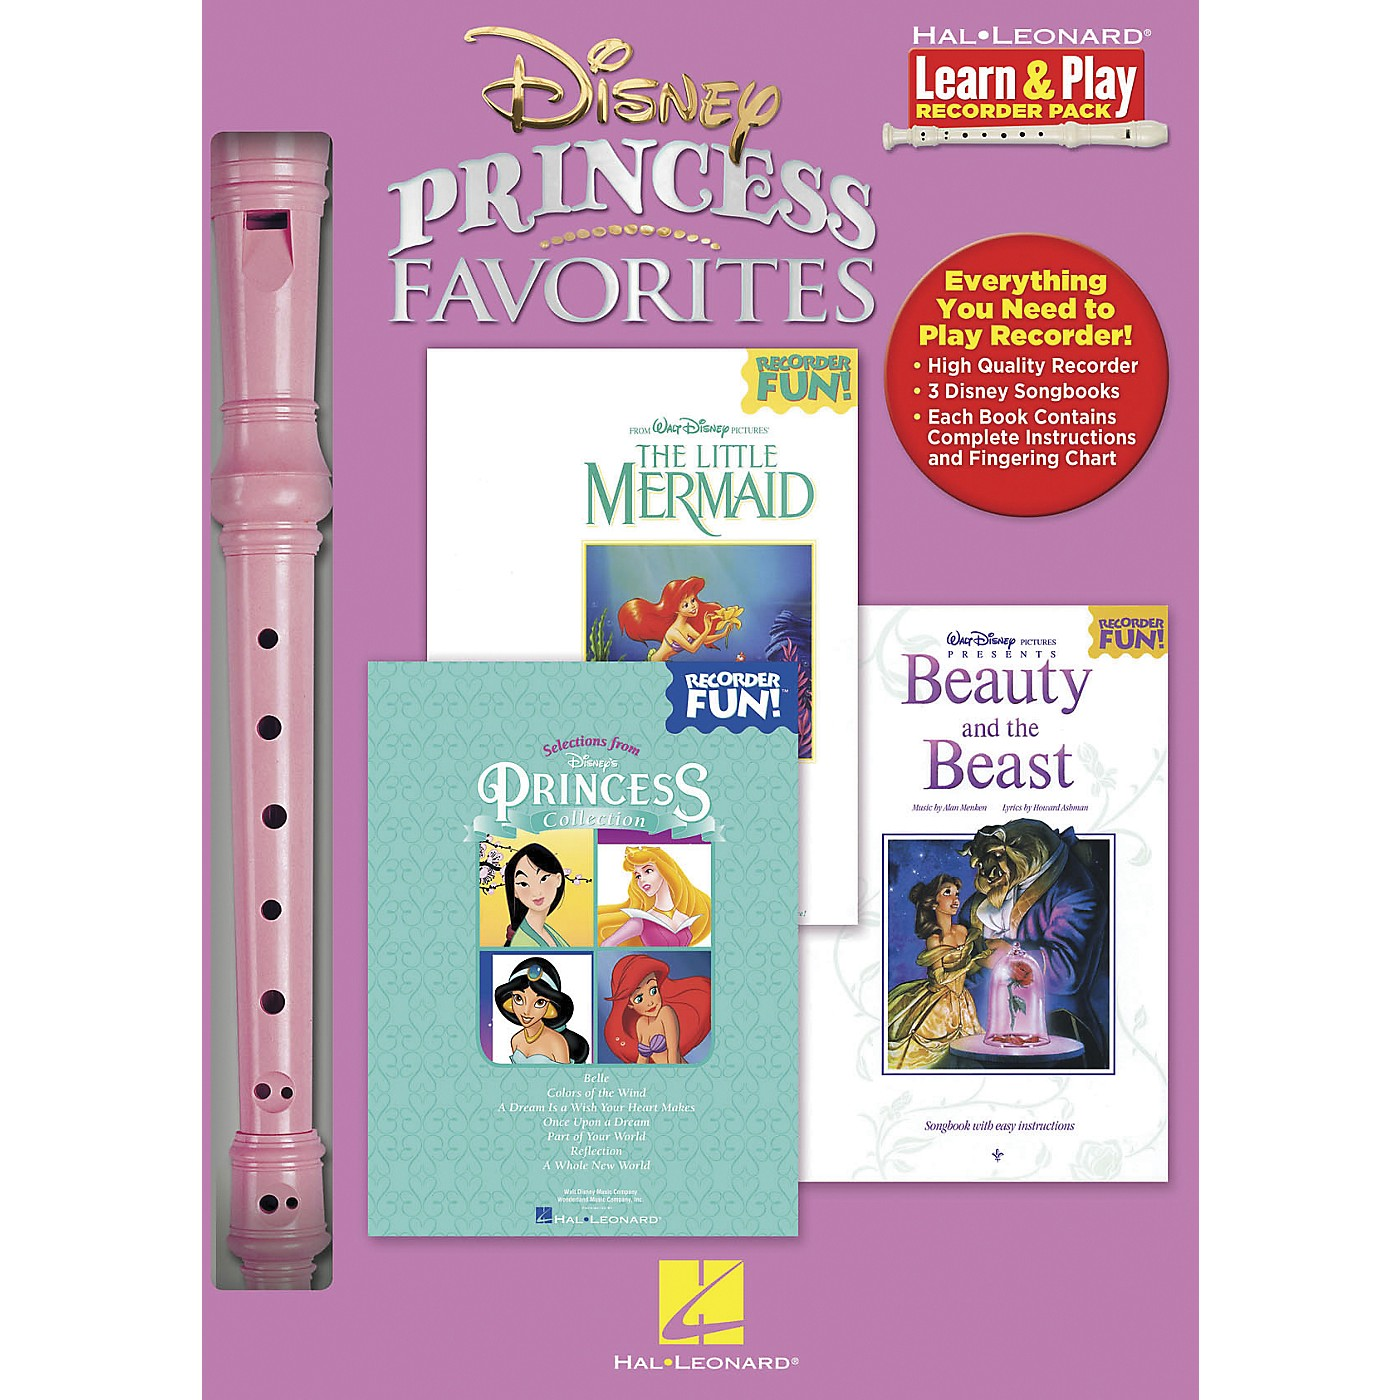 Hal Leonard Disney Princess Favorites Learn & Play 3-Book & Recorder Pack thumbnail